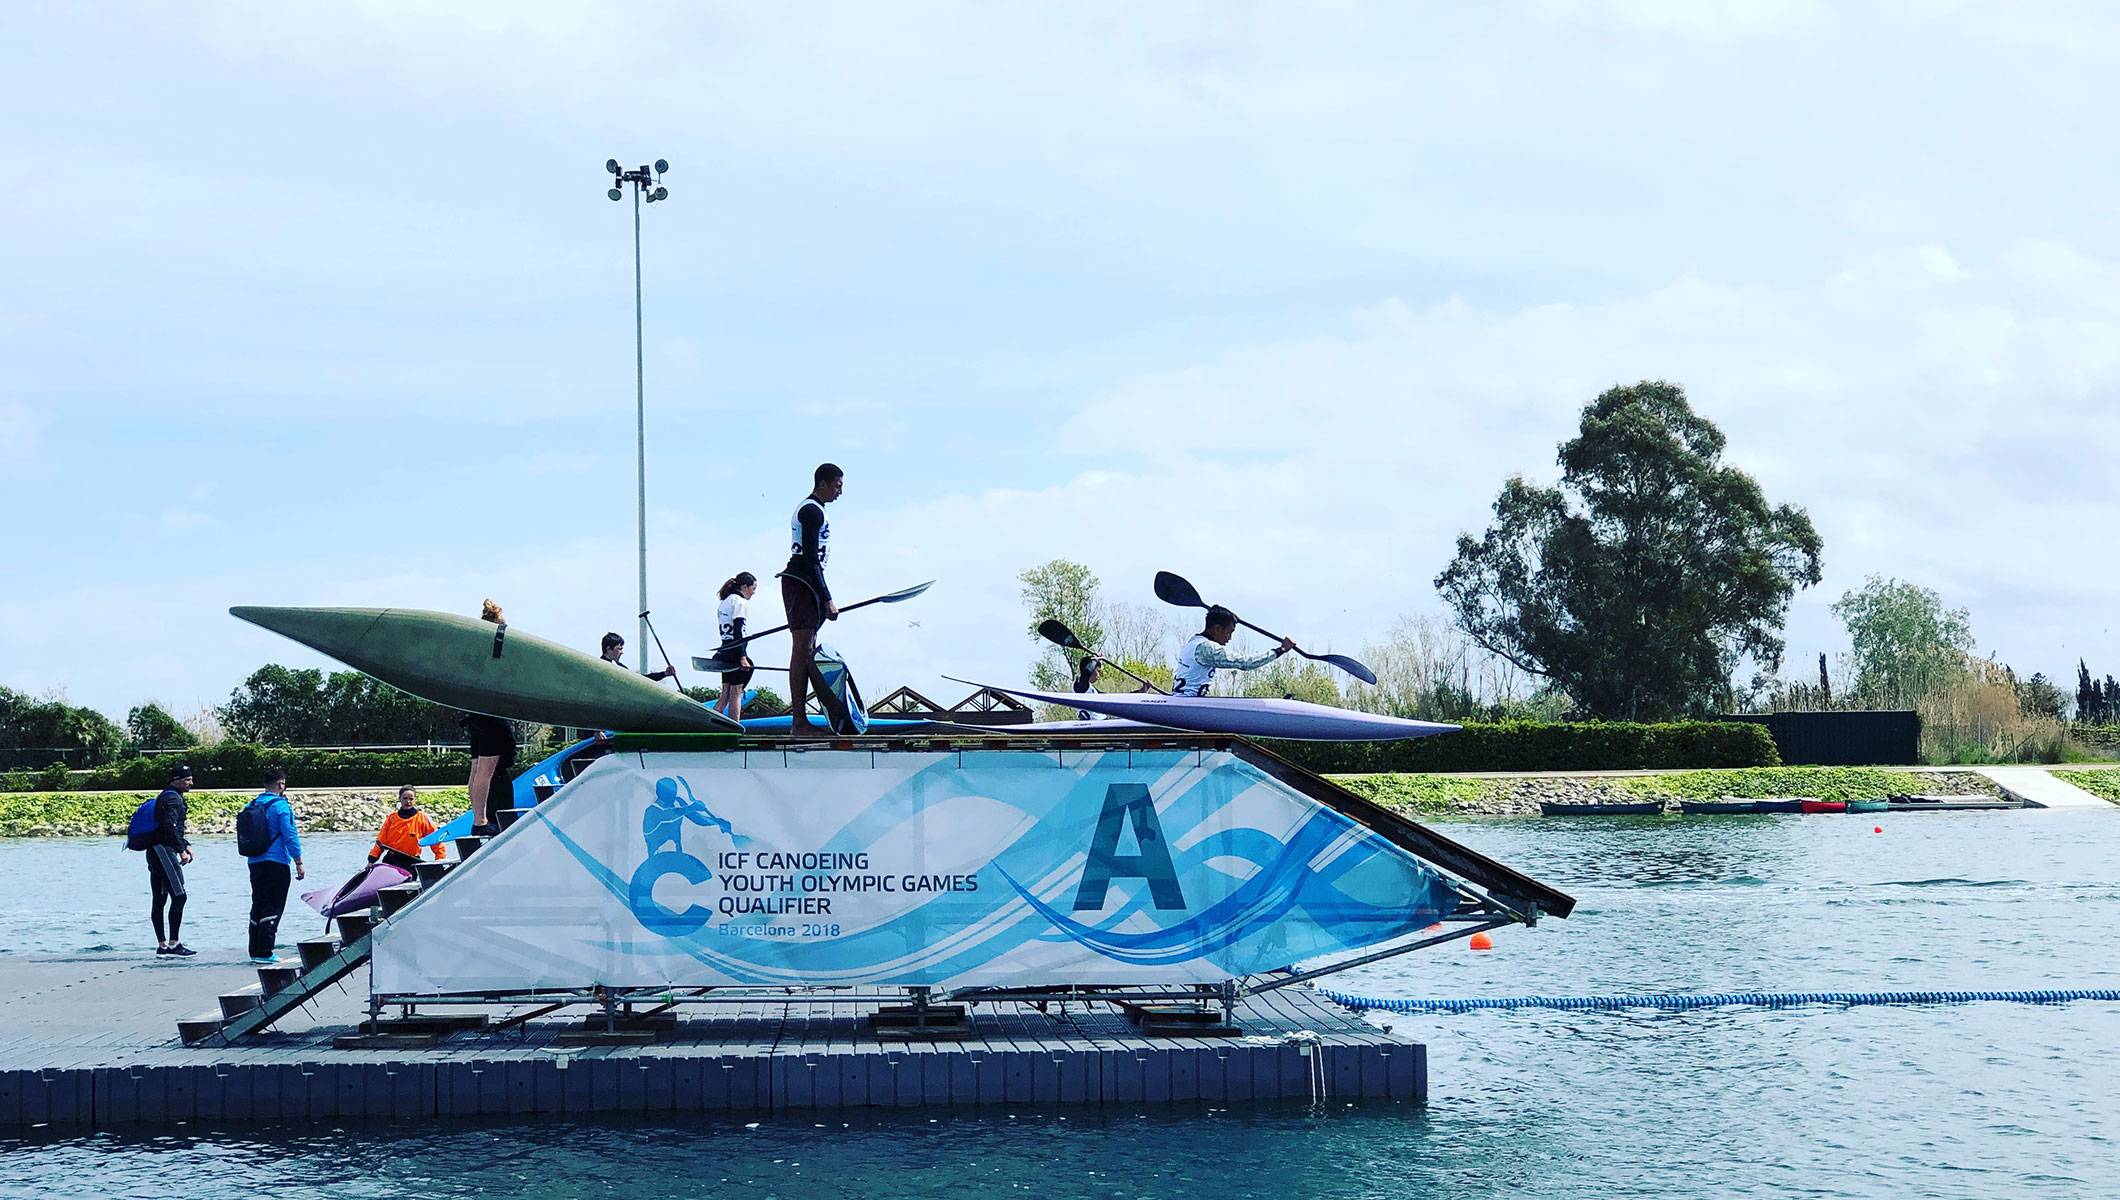 ICF Canoeing Youth Olympic Games Qualifier